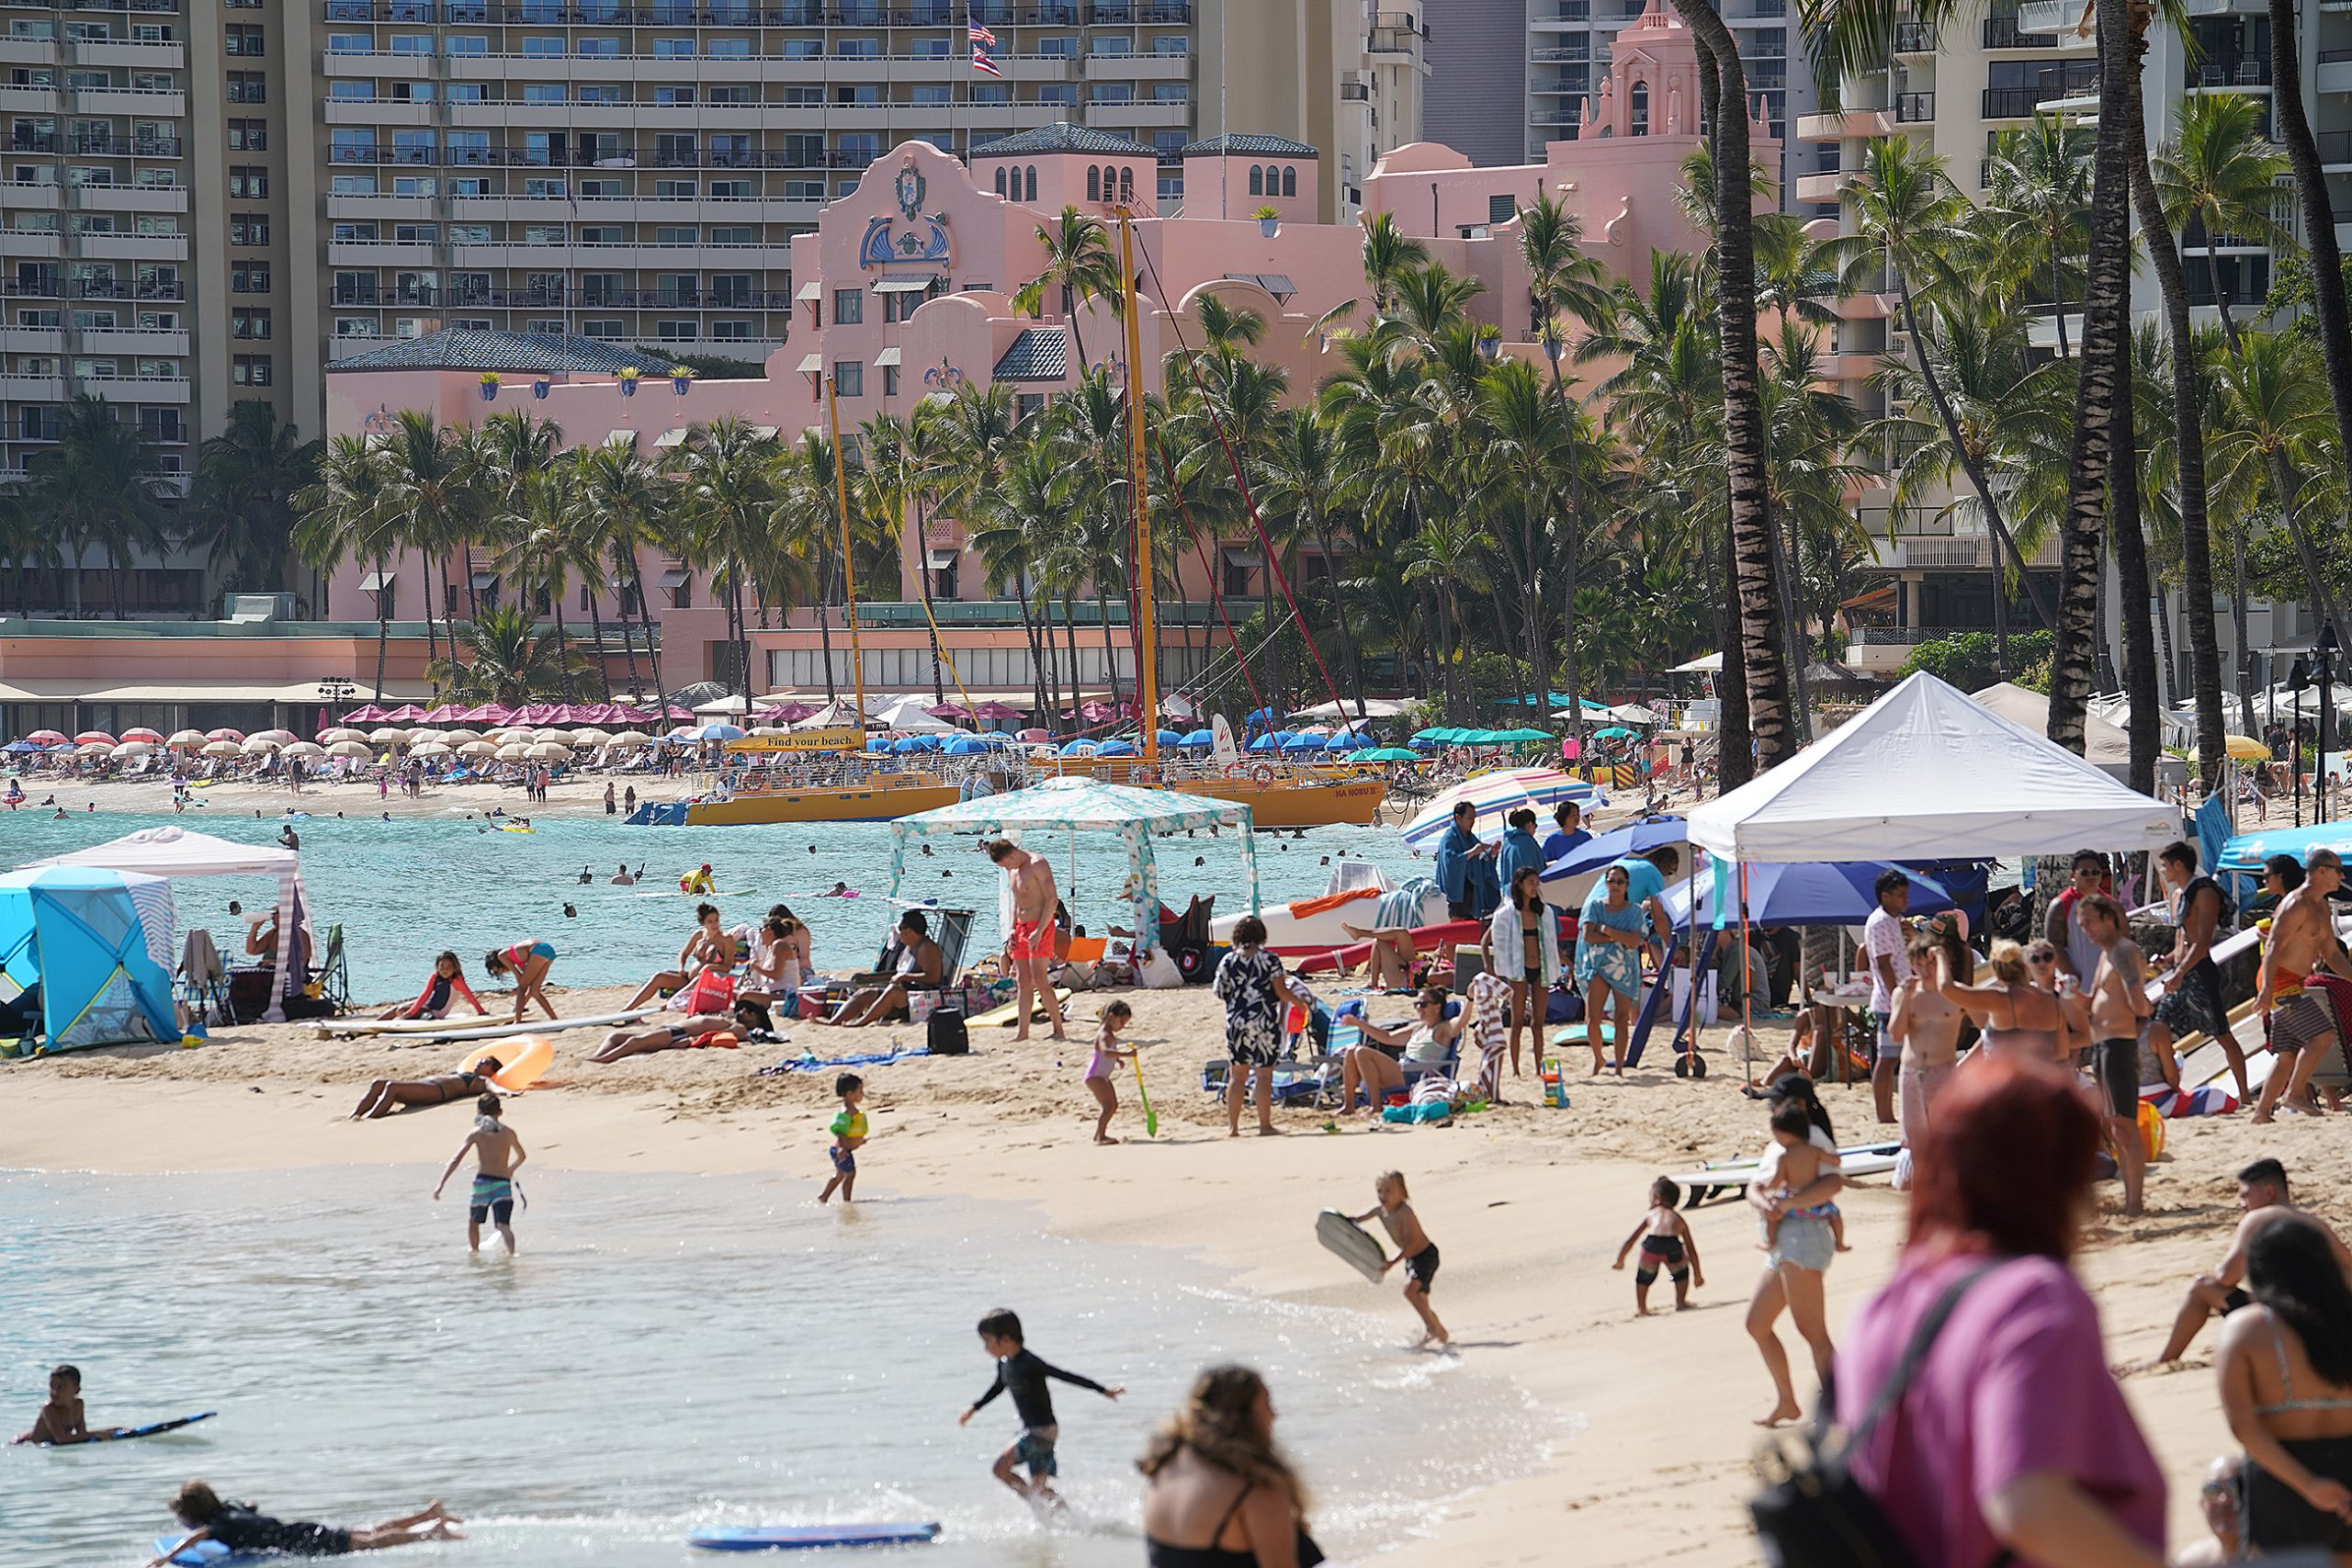 Peter Apo: How To Manage Hawaii Tourism For The Future